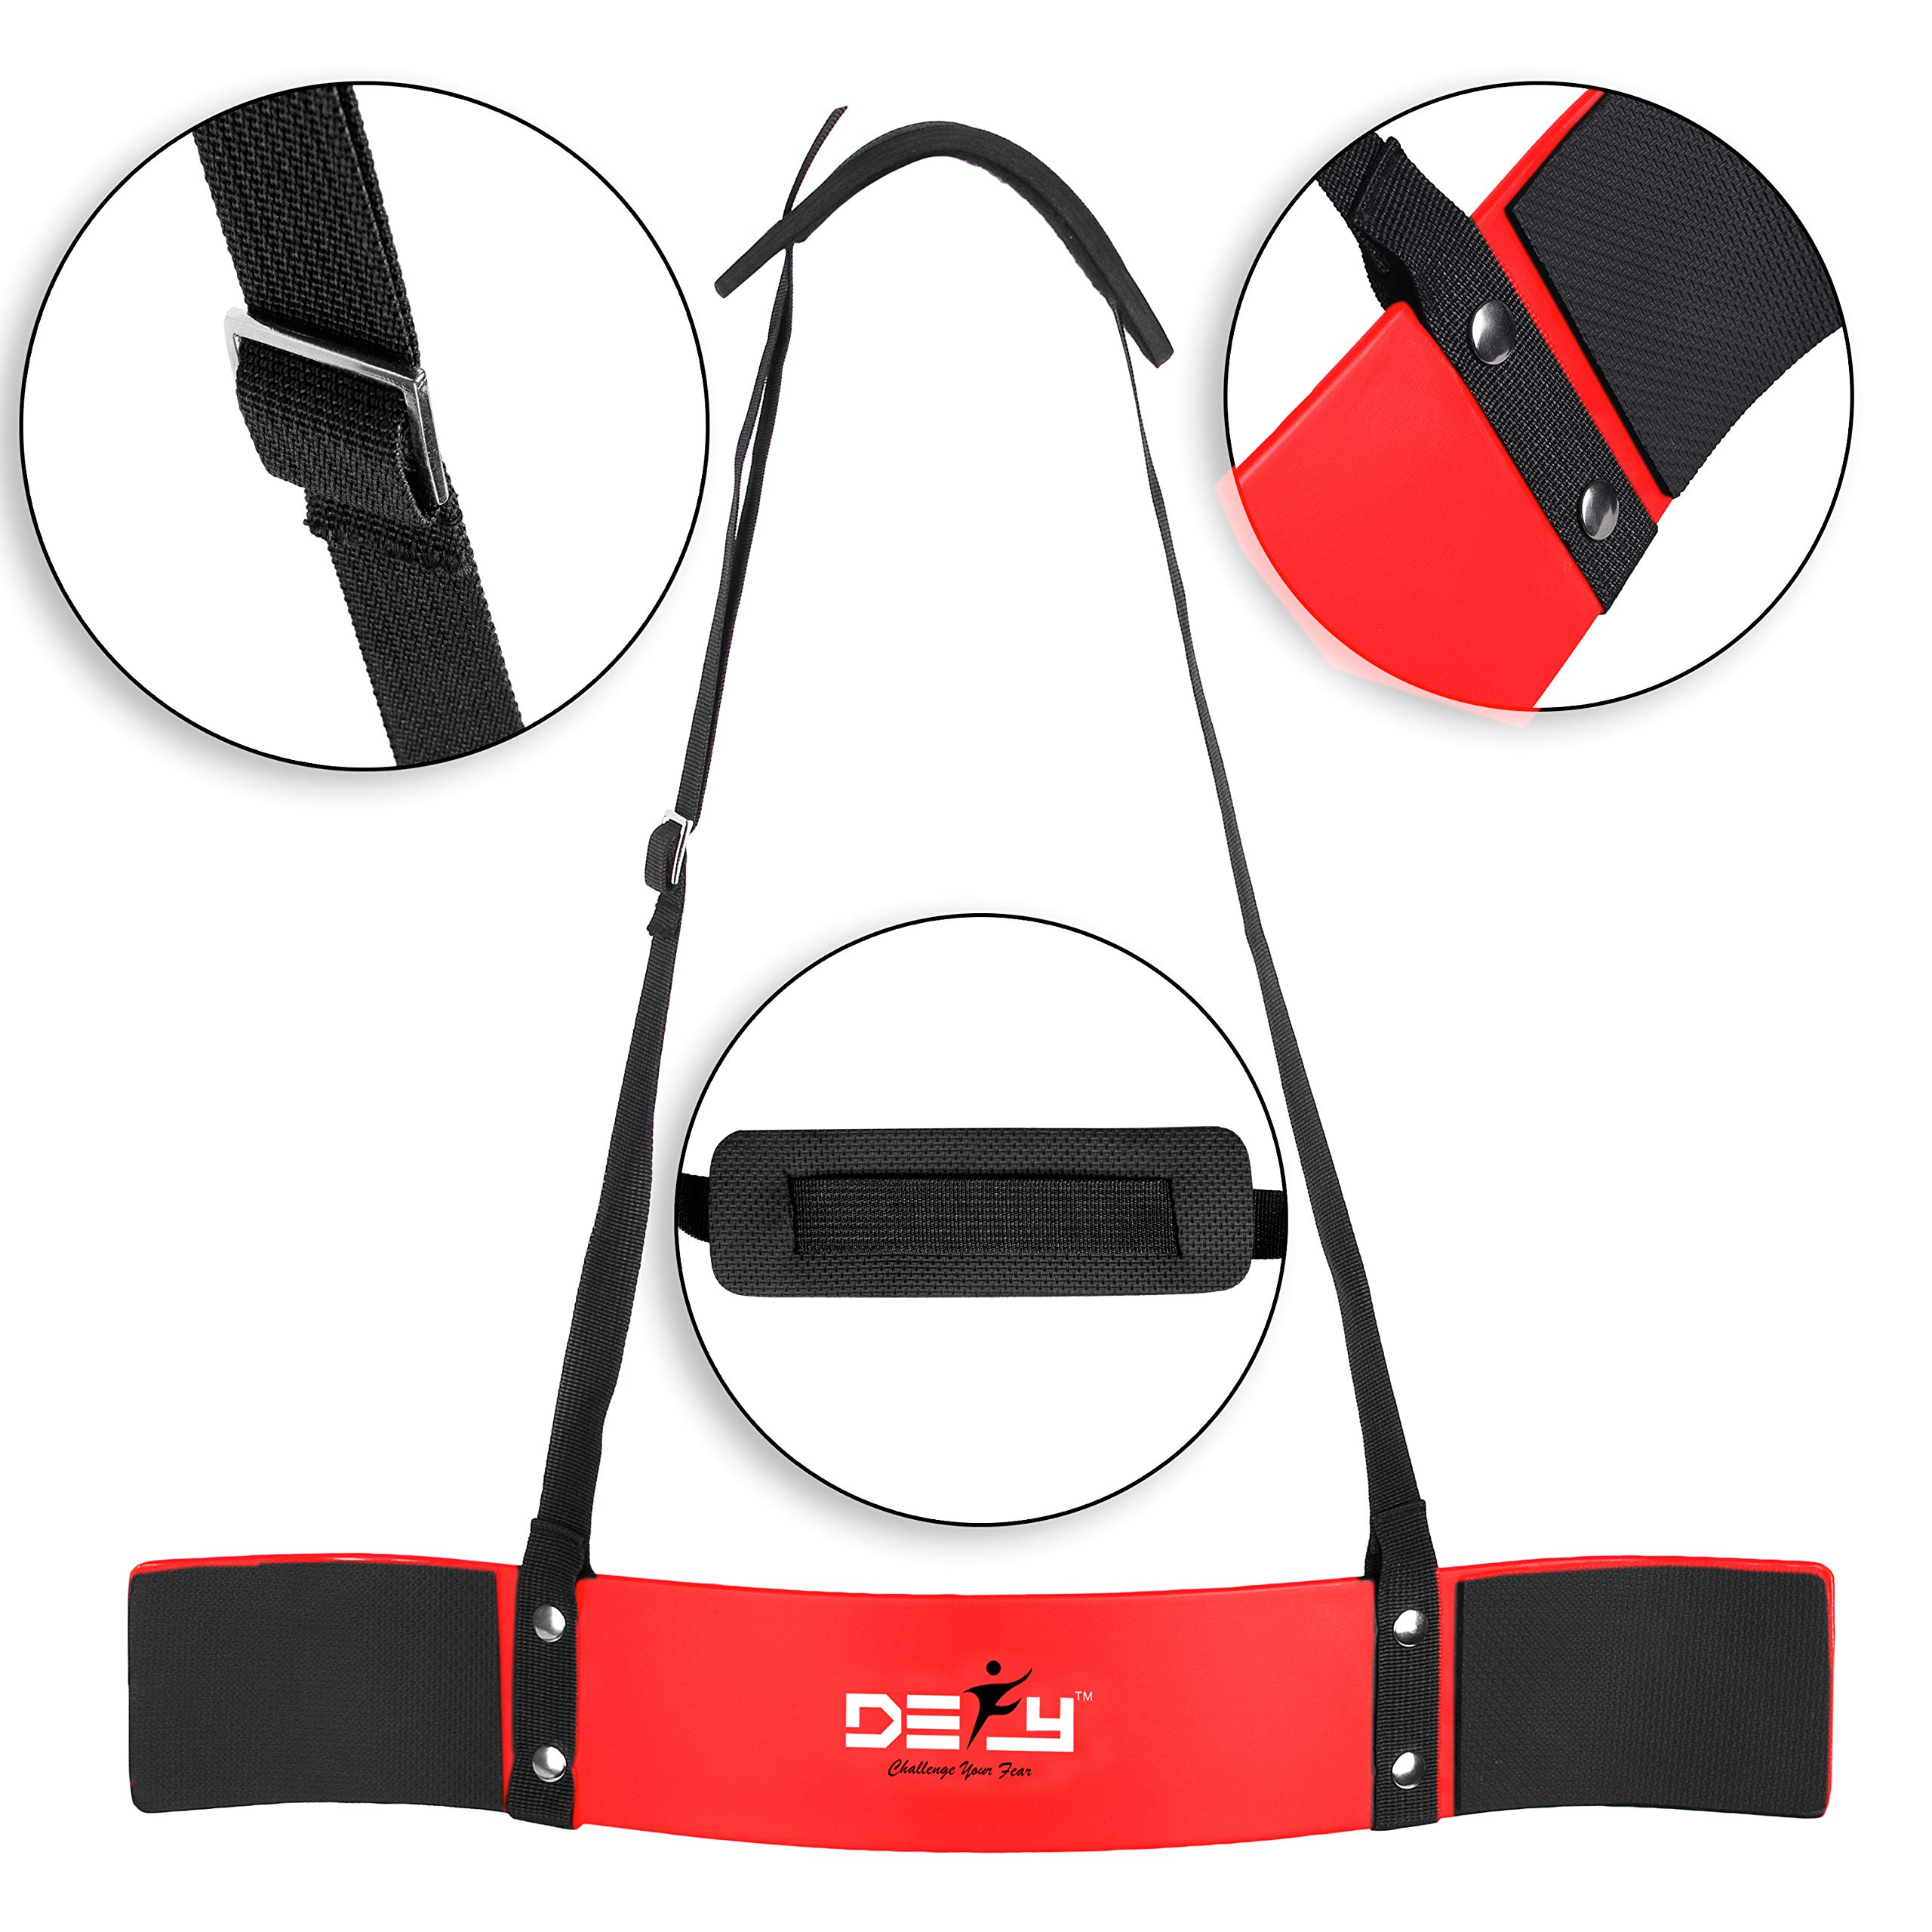 DEFY Heavy Duty Arm Blaster for Biceps and Triceps Workout Ideal Bicep Isolator & Muscle Builder for Bodybuilders and Weight Lifters with Advanced Neoprene Padding for Secure Workout (Red)